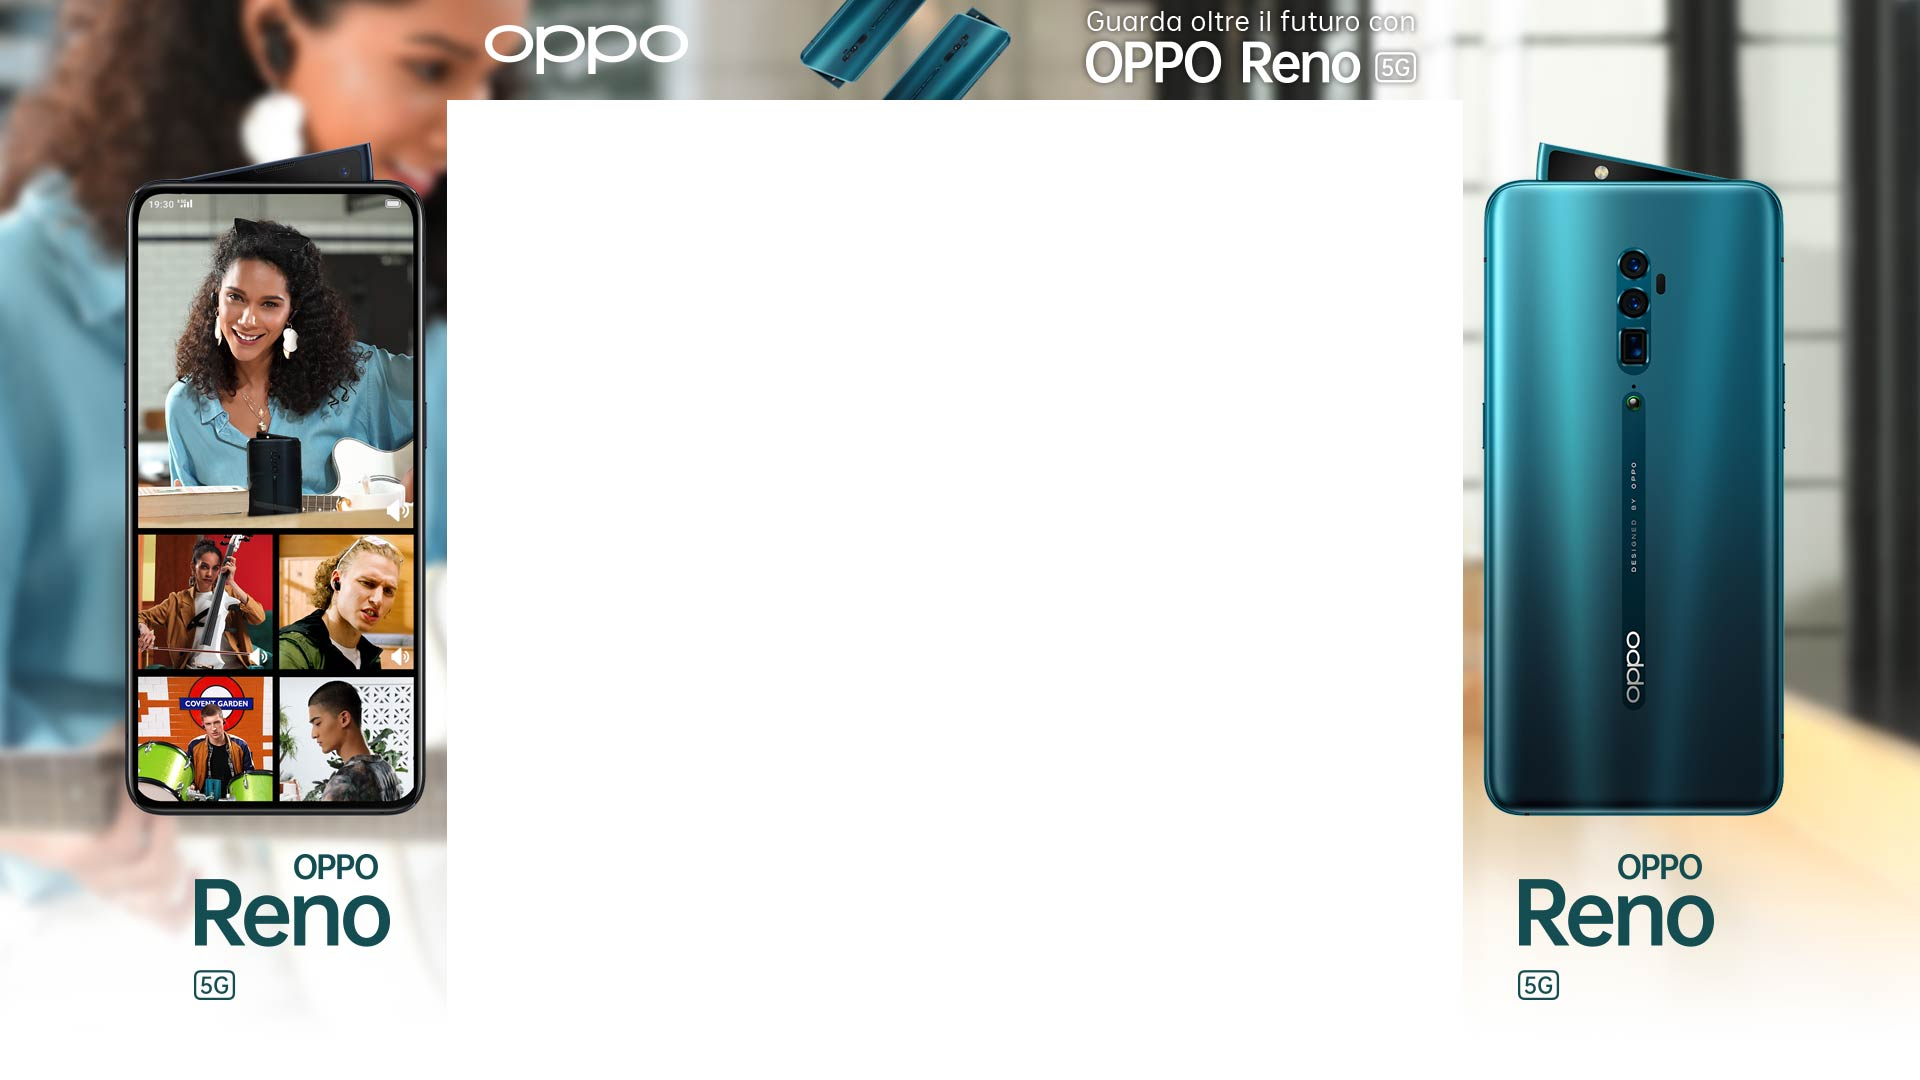 Oppo Competitors, Reviews, Marketing Contacts, Traffic